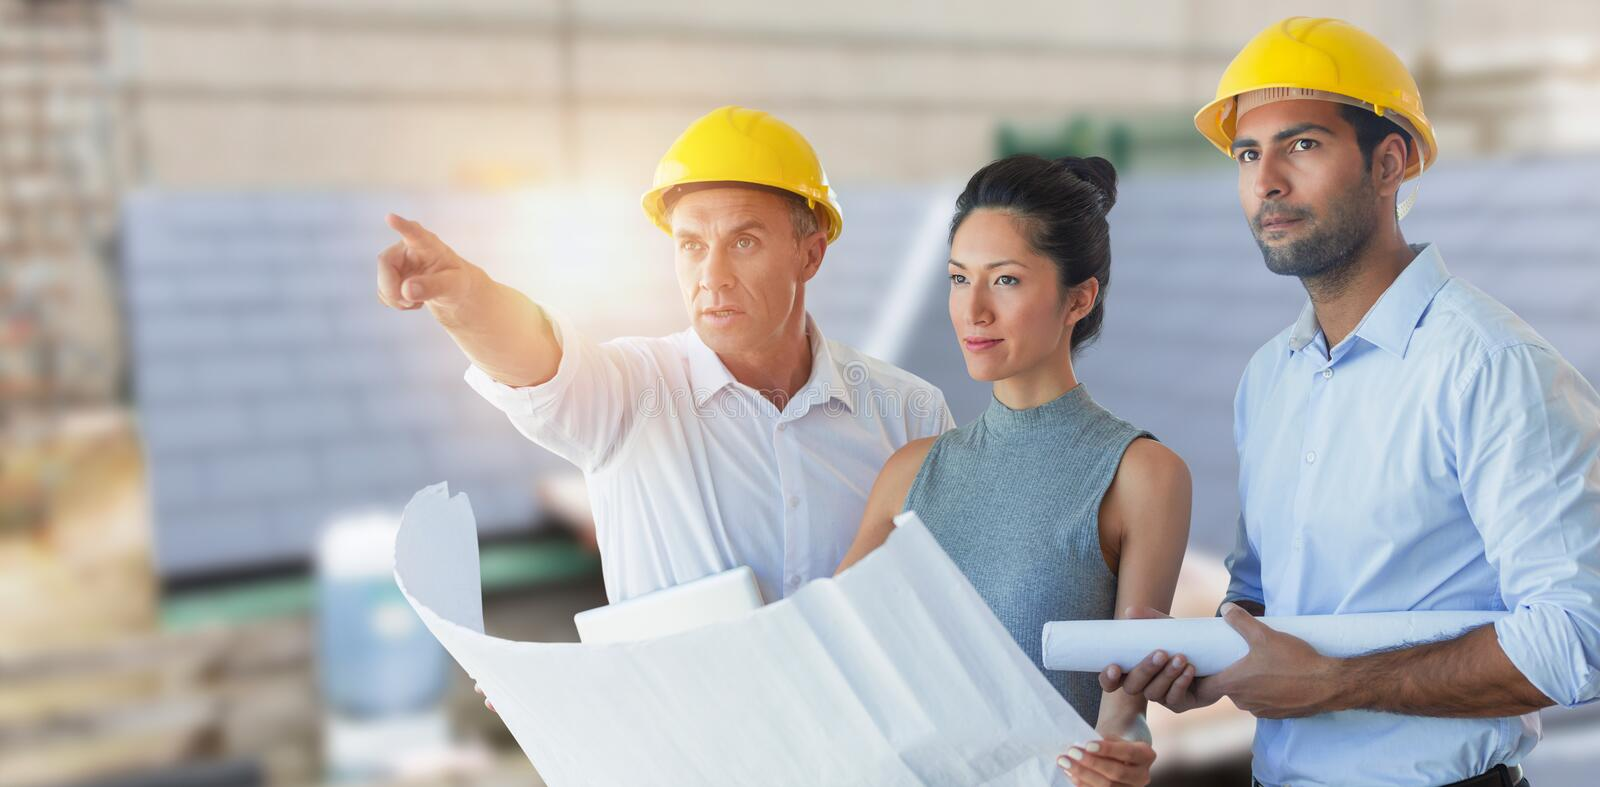 Composite image of architects looking away while holding blueprint royalty free stock image